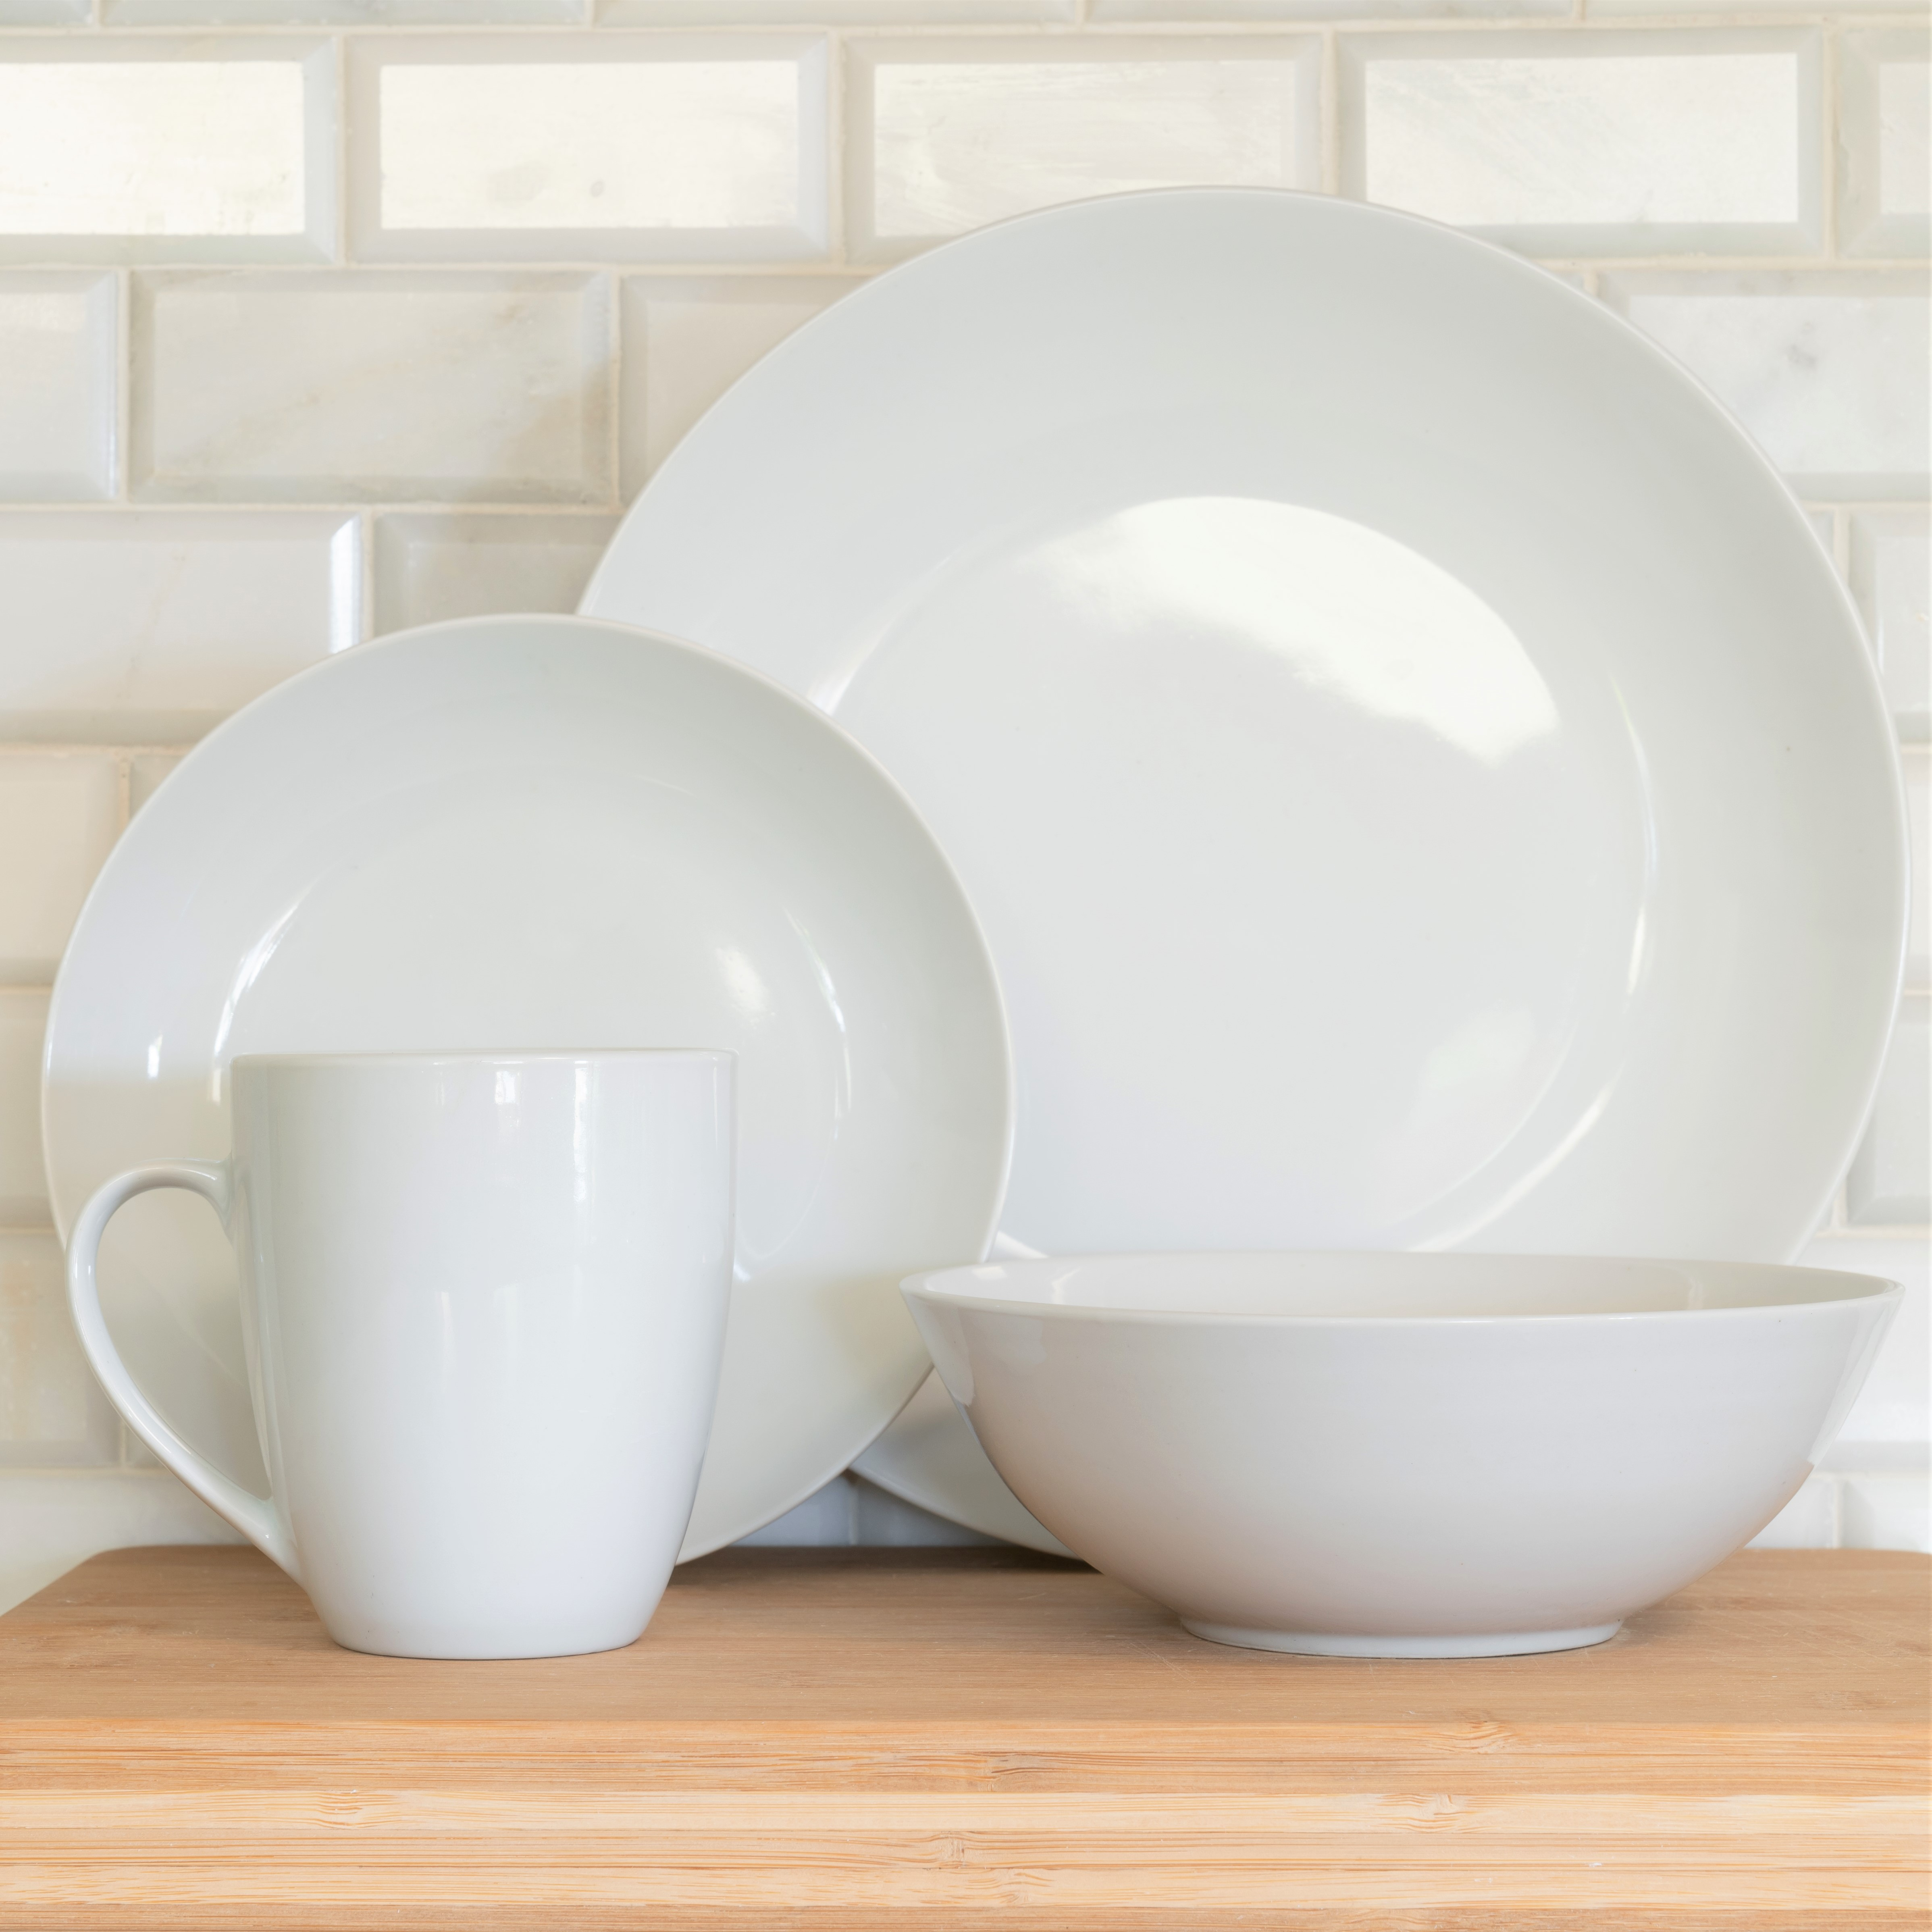 16 Piece Dish Sets